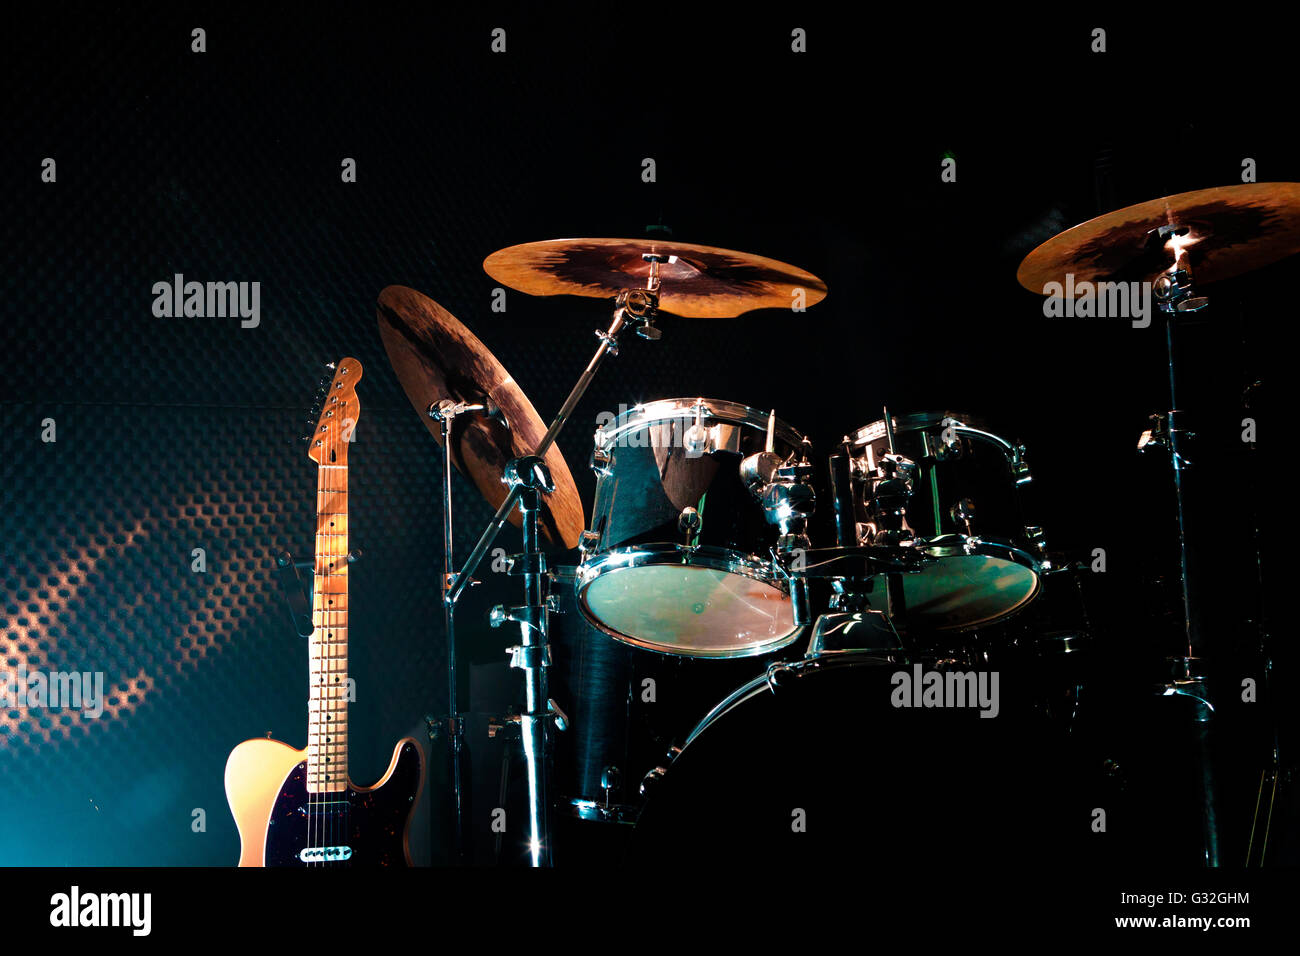 Rehearsal studio.Live music and instruments - Stock Image